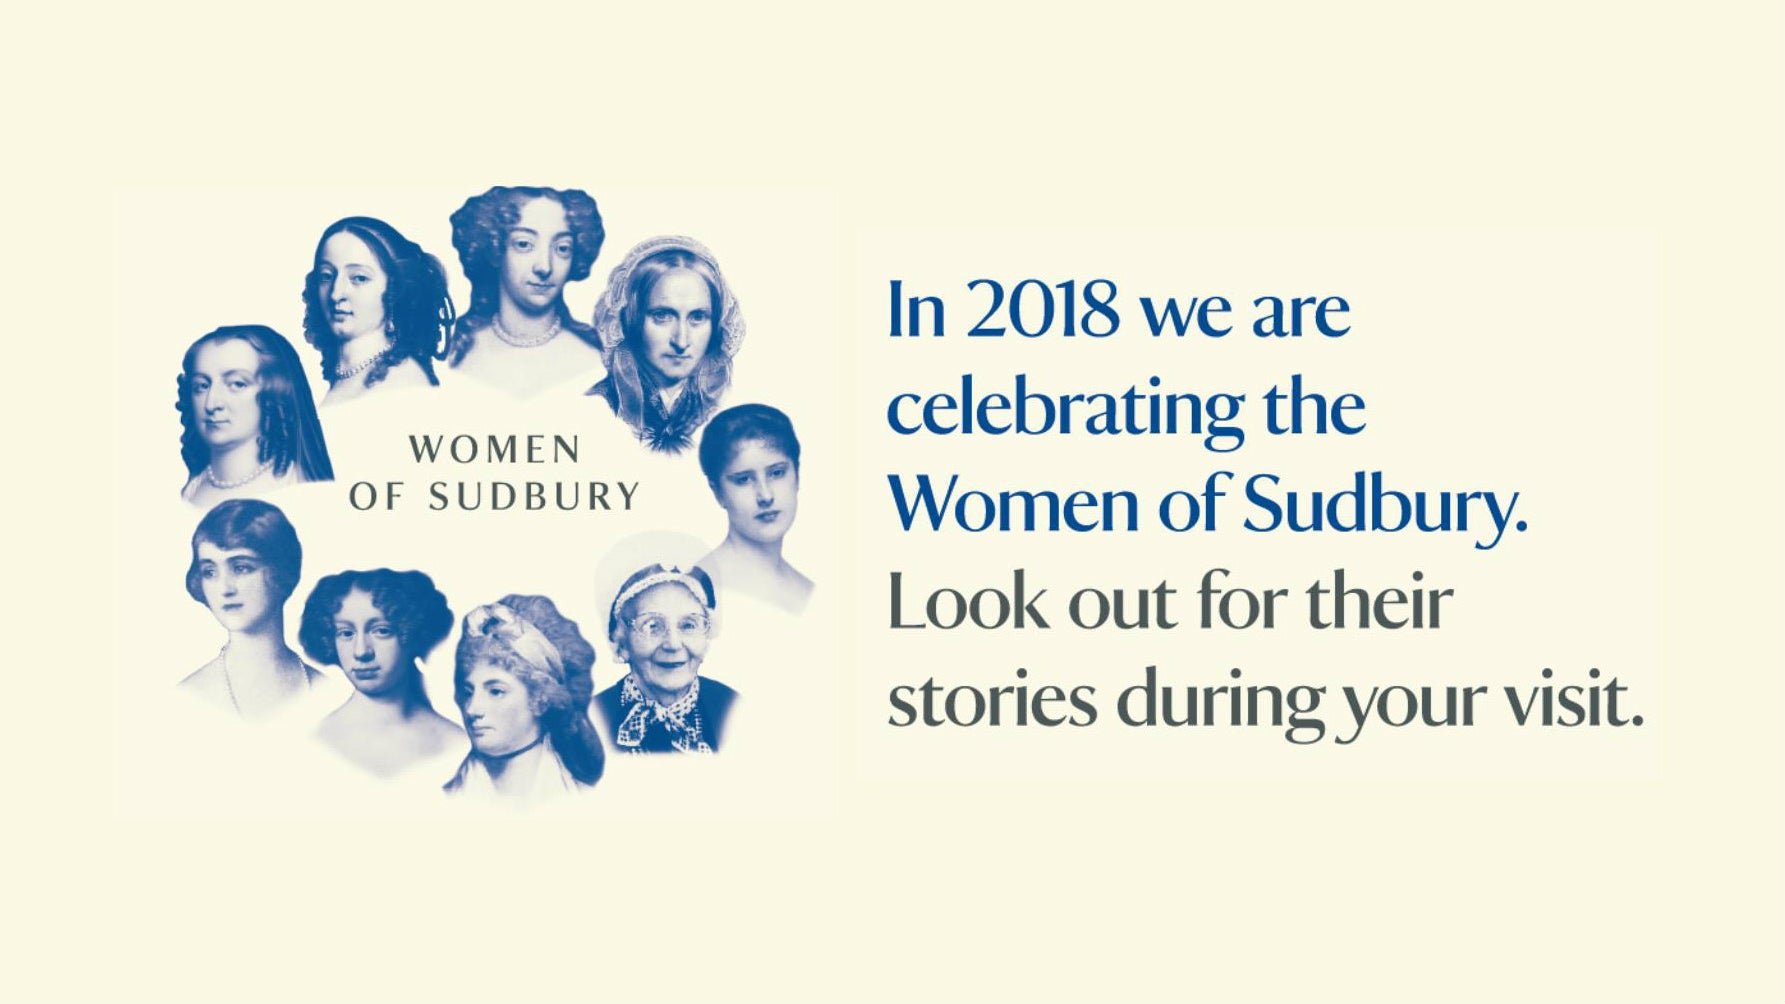 The Women of Sudbury